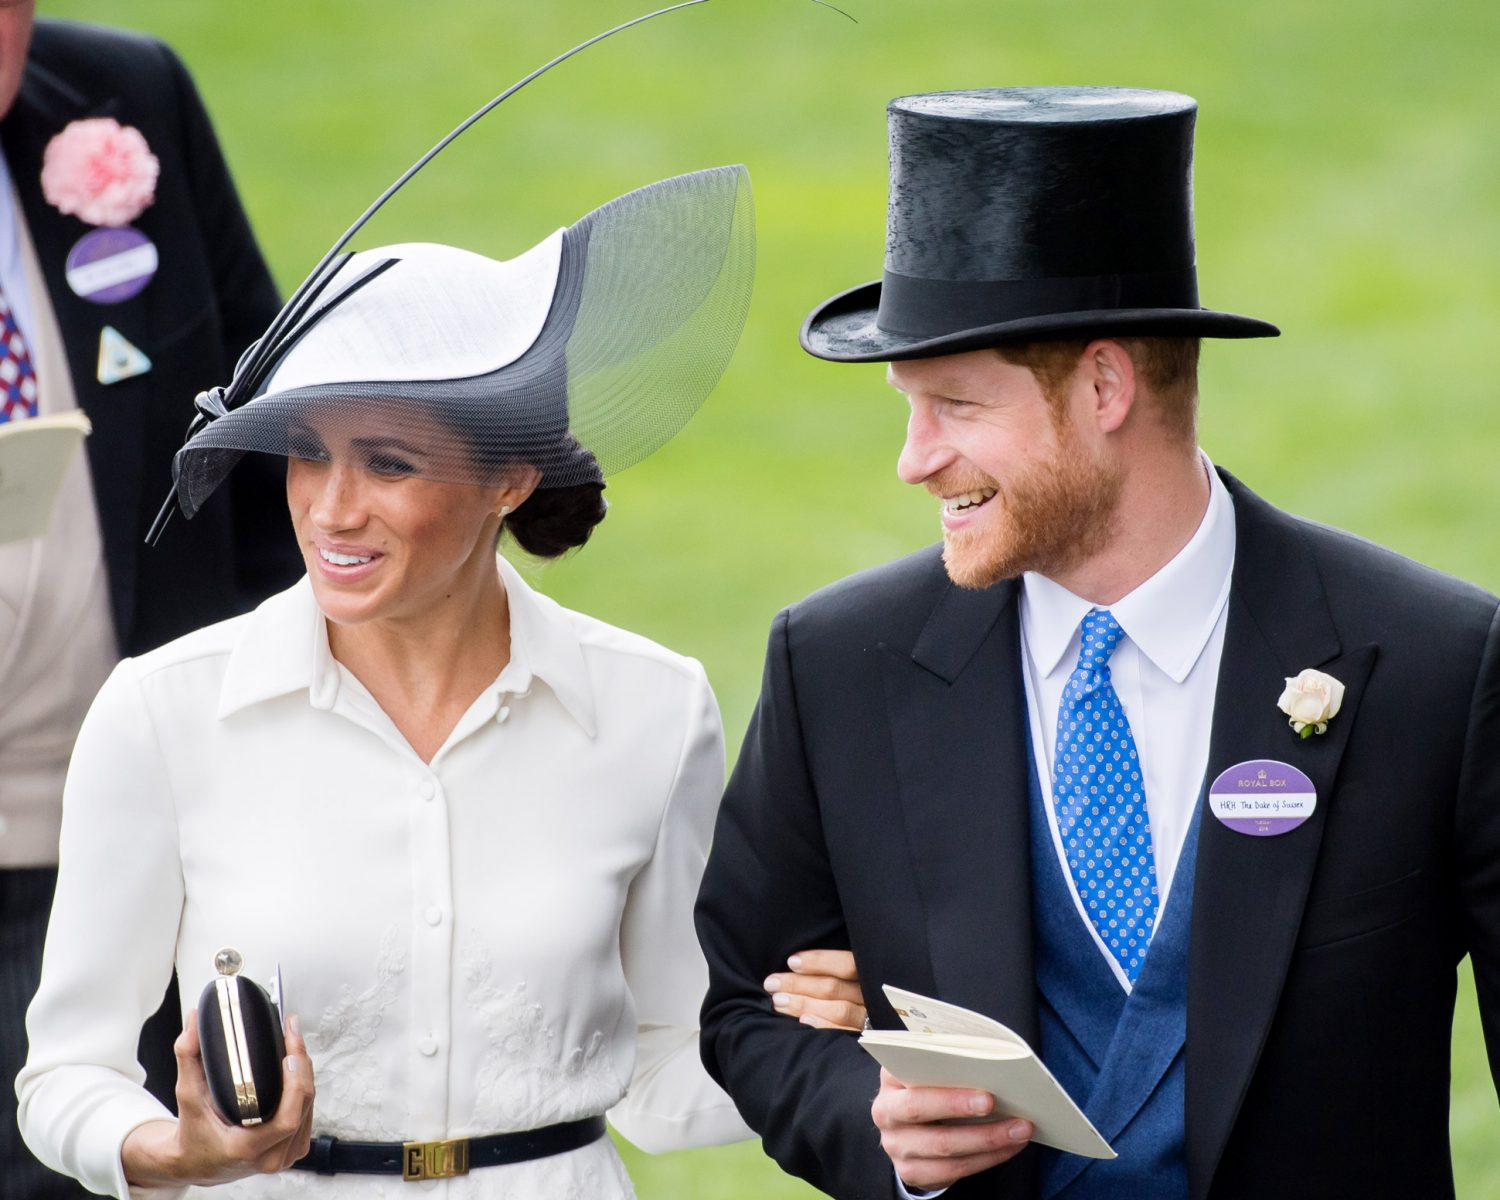 Prince Harry Just Paused His Honeymoon To Make A Major Announcement recommendations